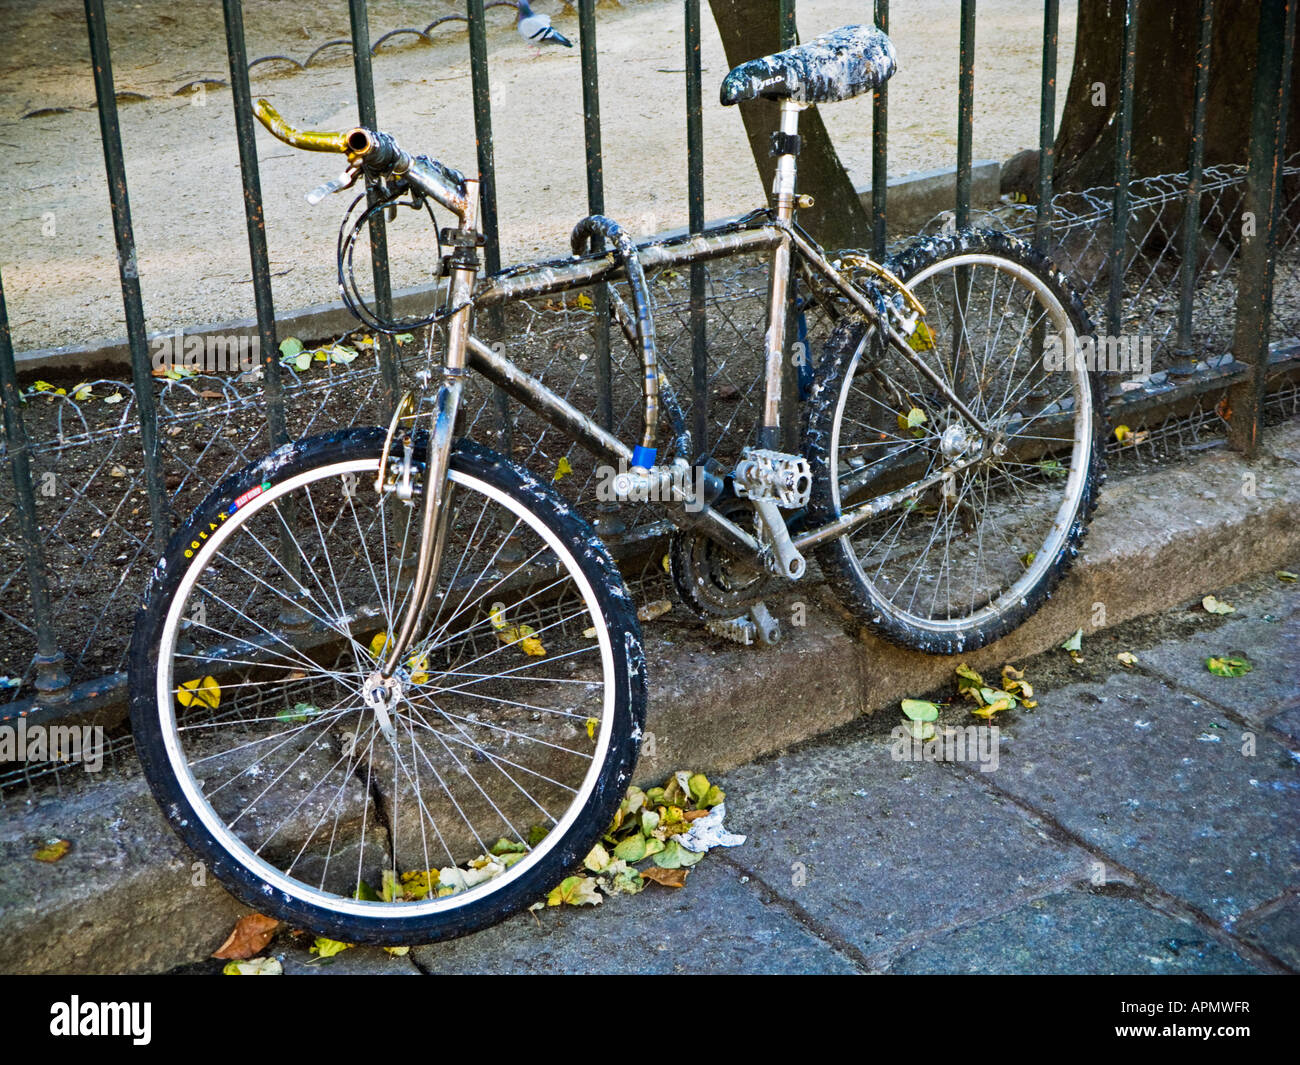 Bicycle chained to a fence for a long time is covered in bird droppings Paris France Europe - Stock Image